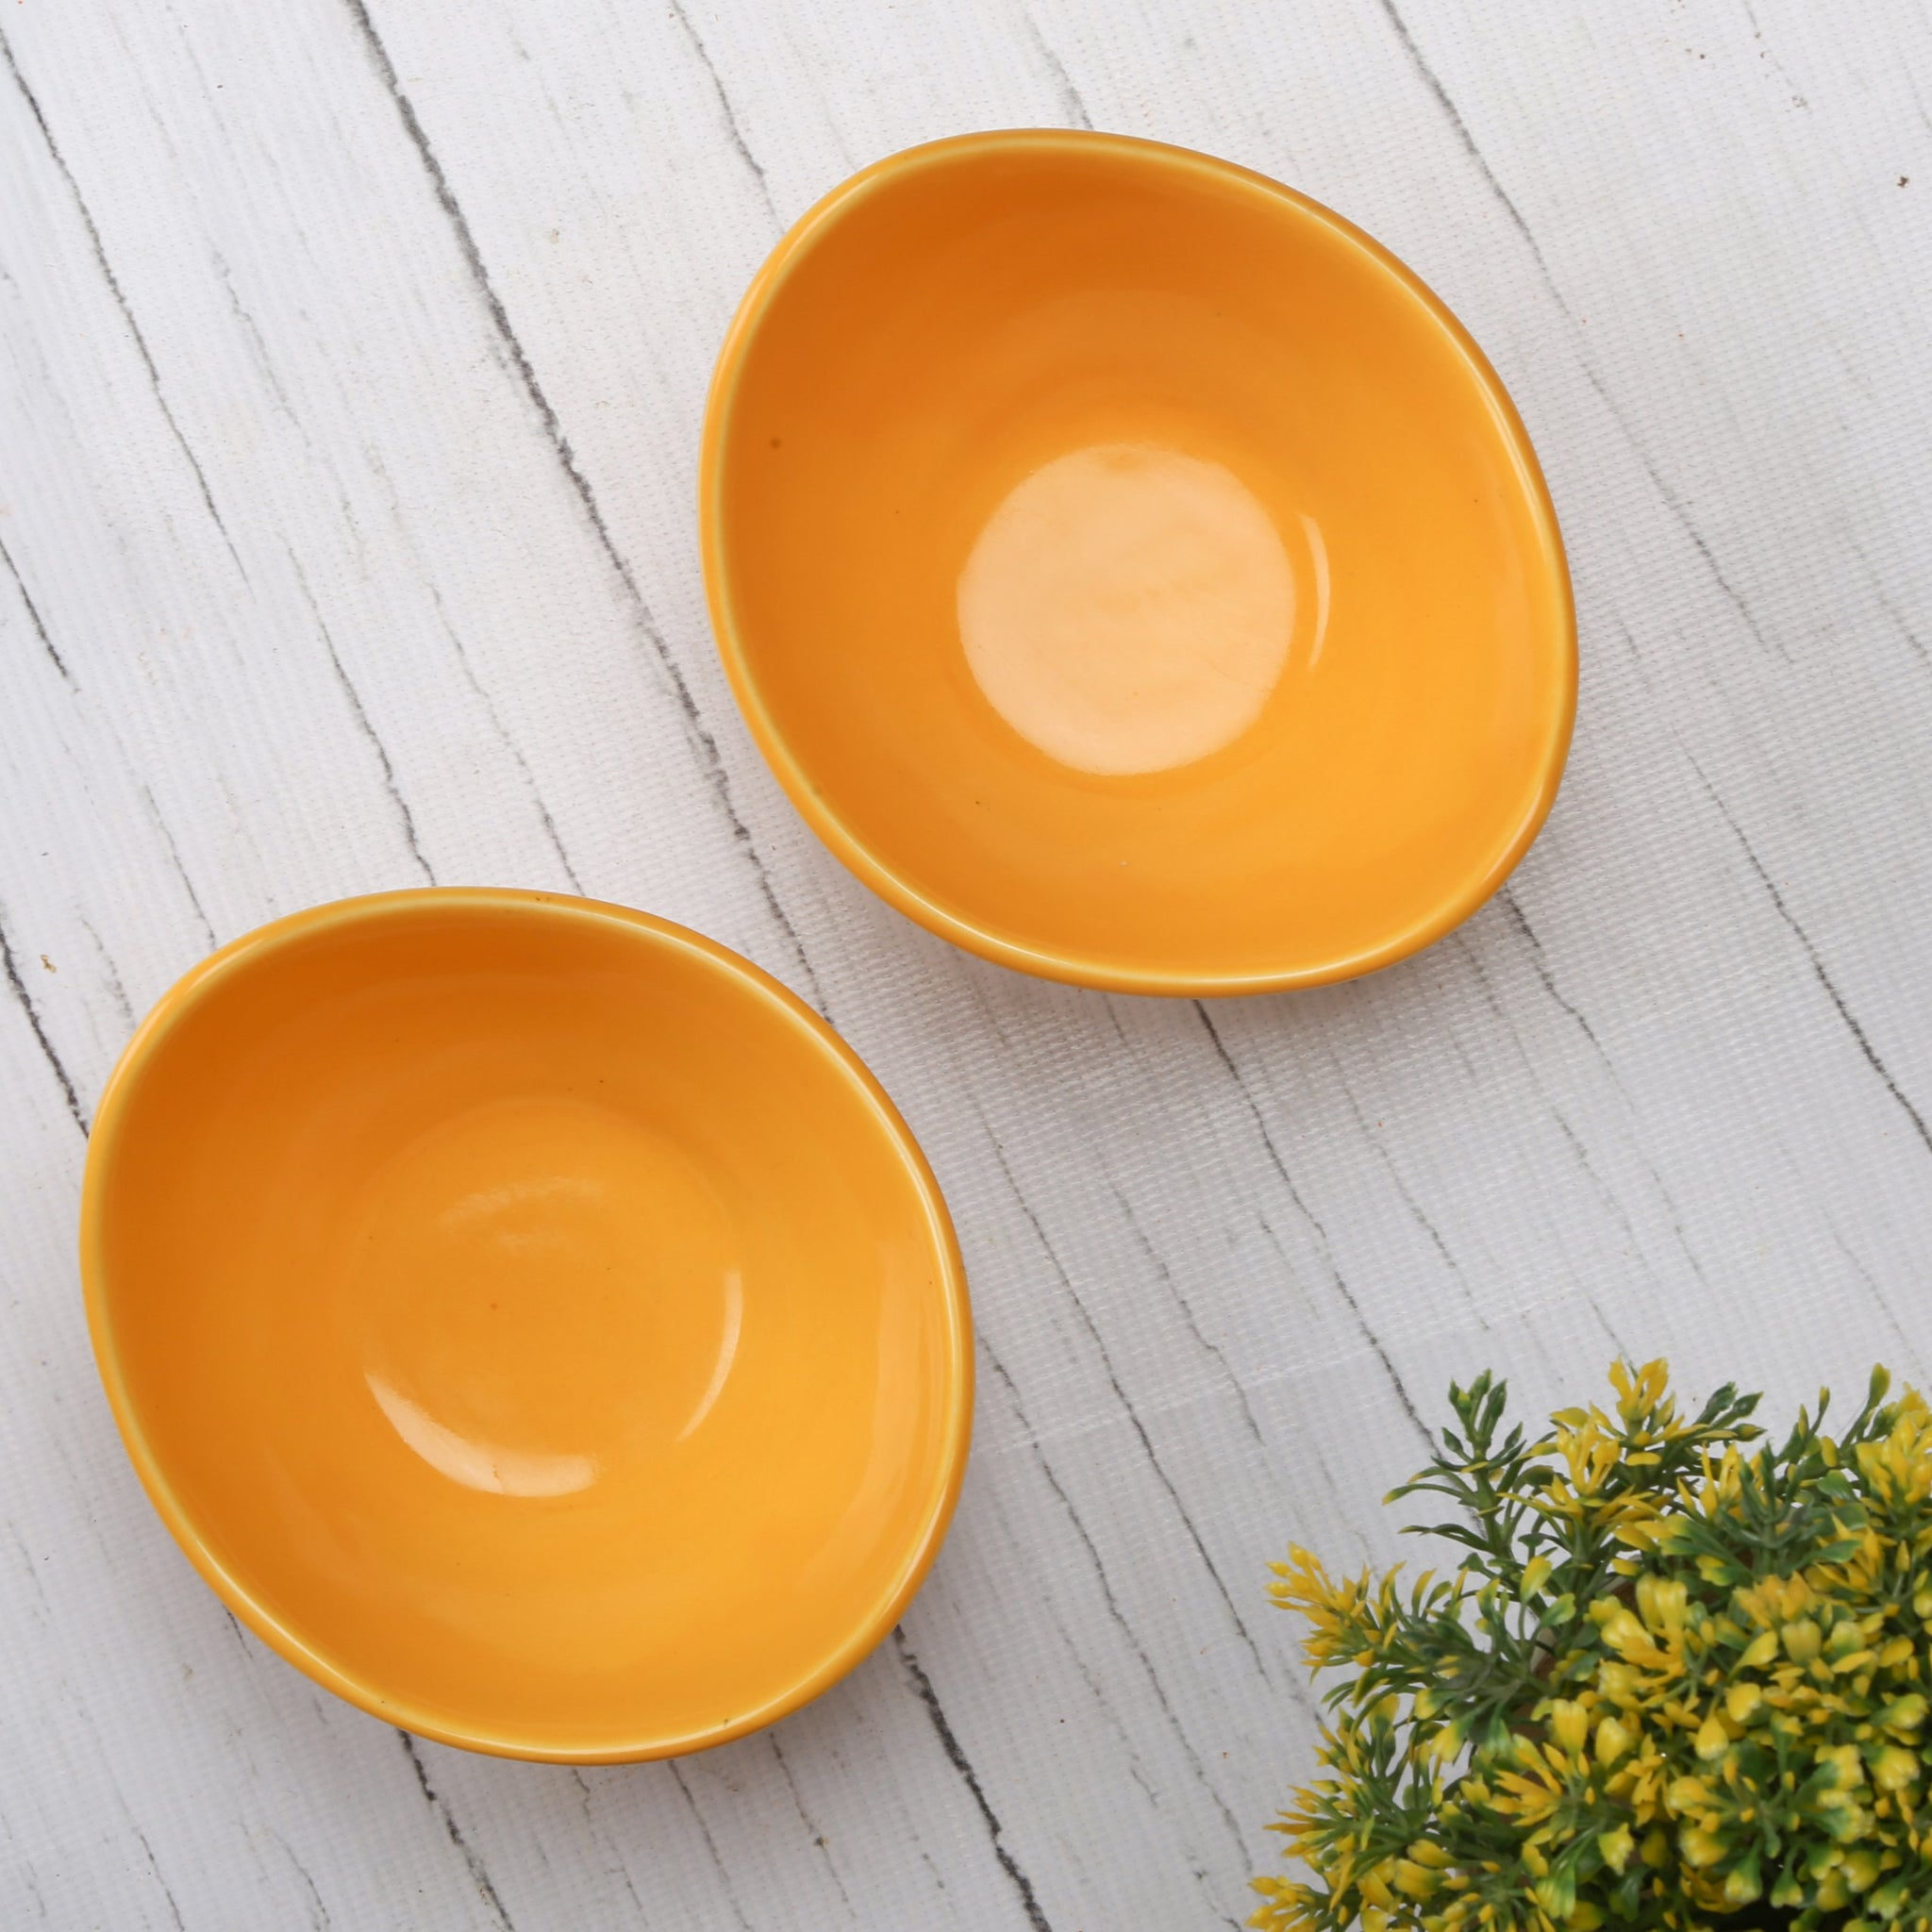 Yellow Ceramic Bowls With Wooden Serving Tray